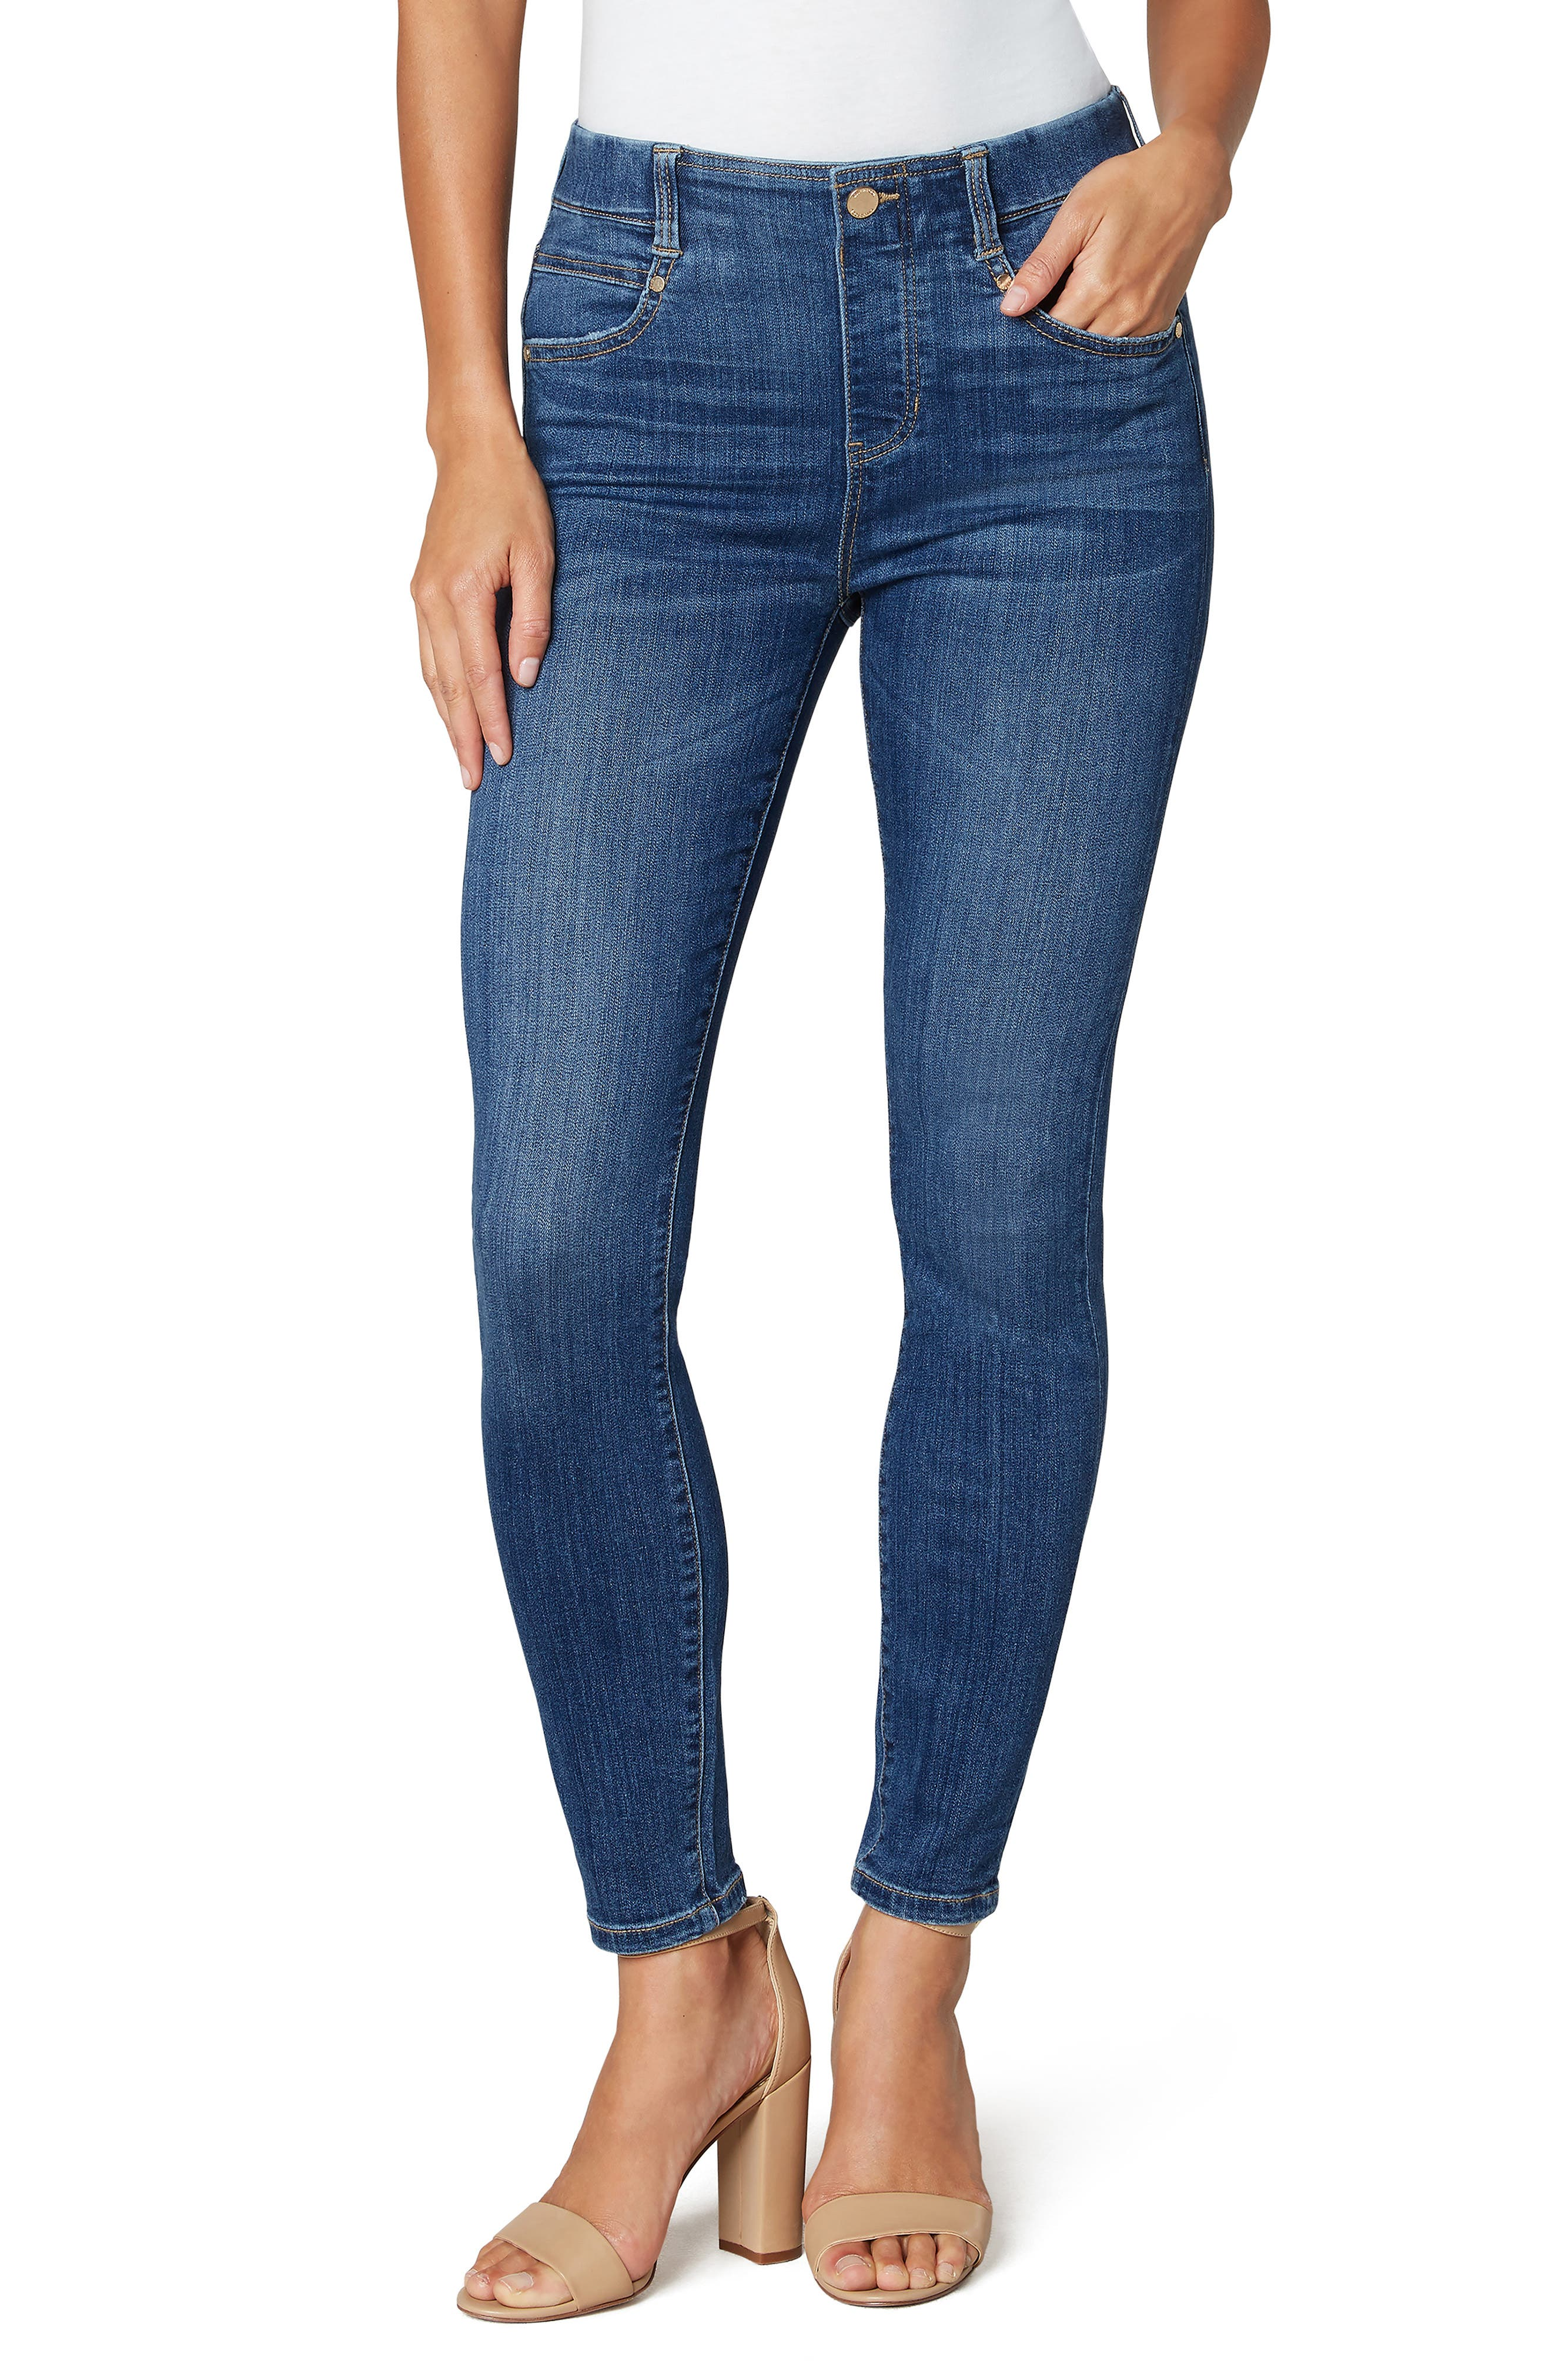 Gia Glider Pull-On Ankle Skinny Jeans